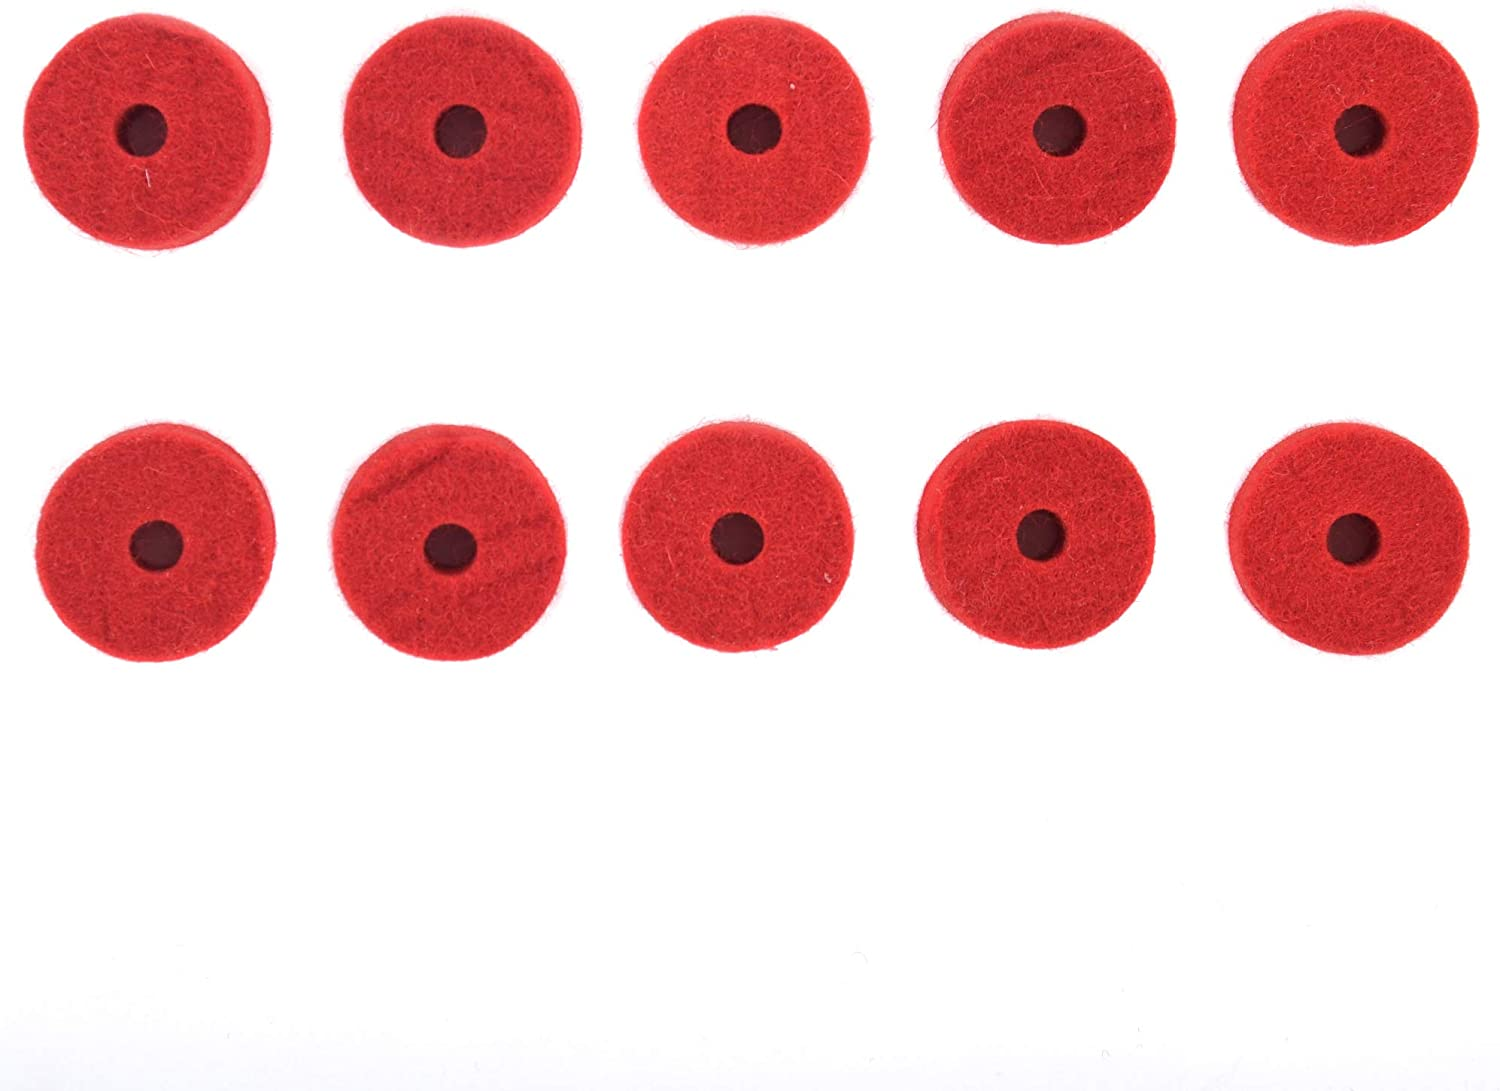 RED WOOL CYMBAL FELTS 10 PACK 1.5 X 0.5